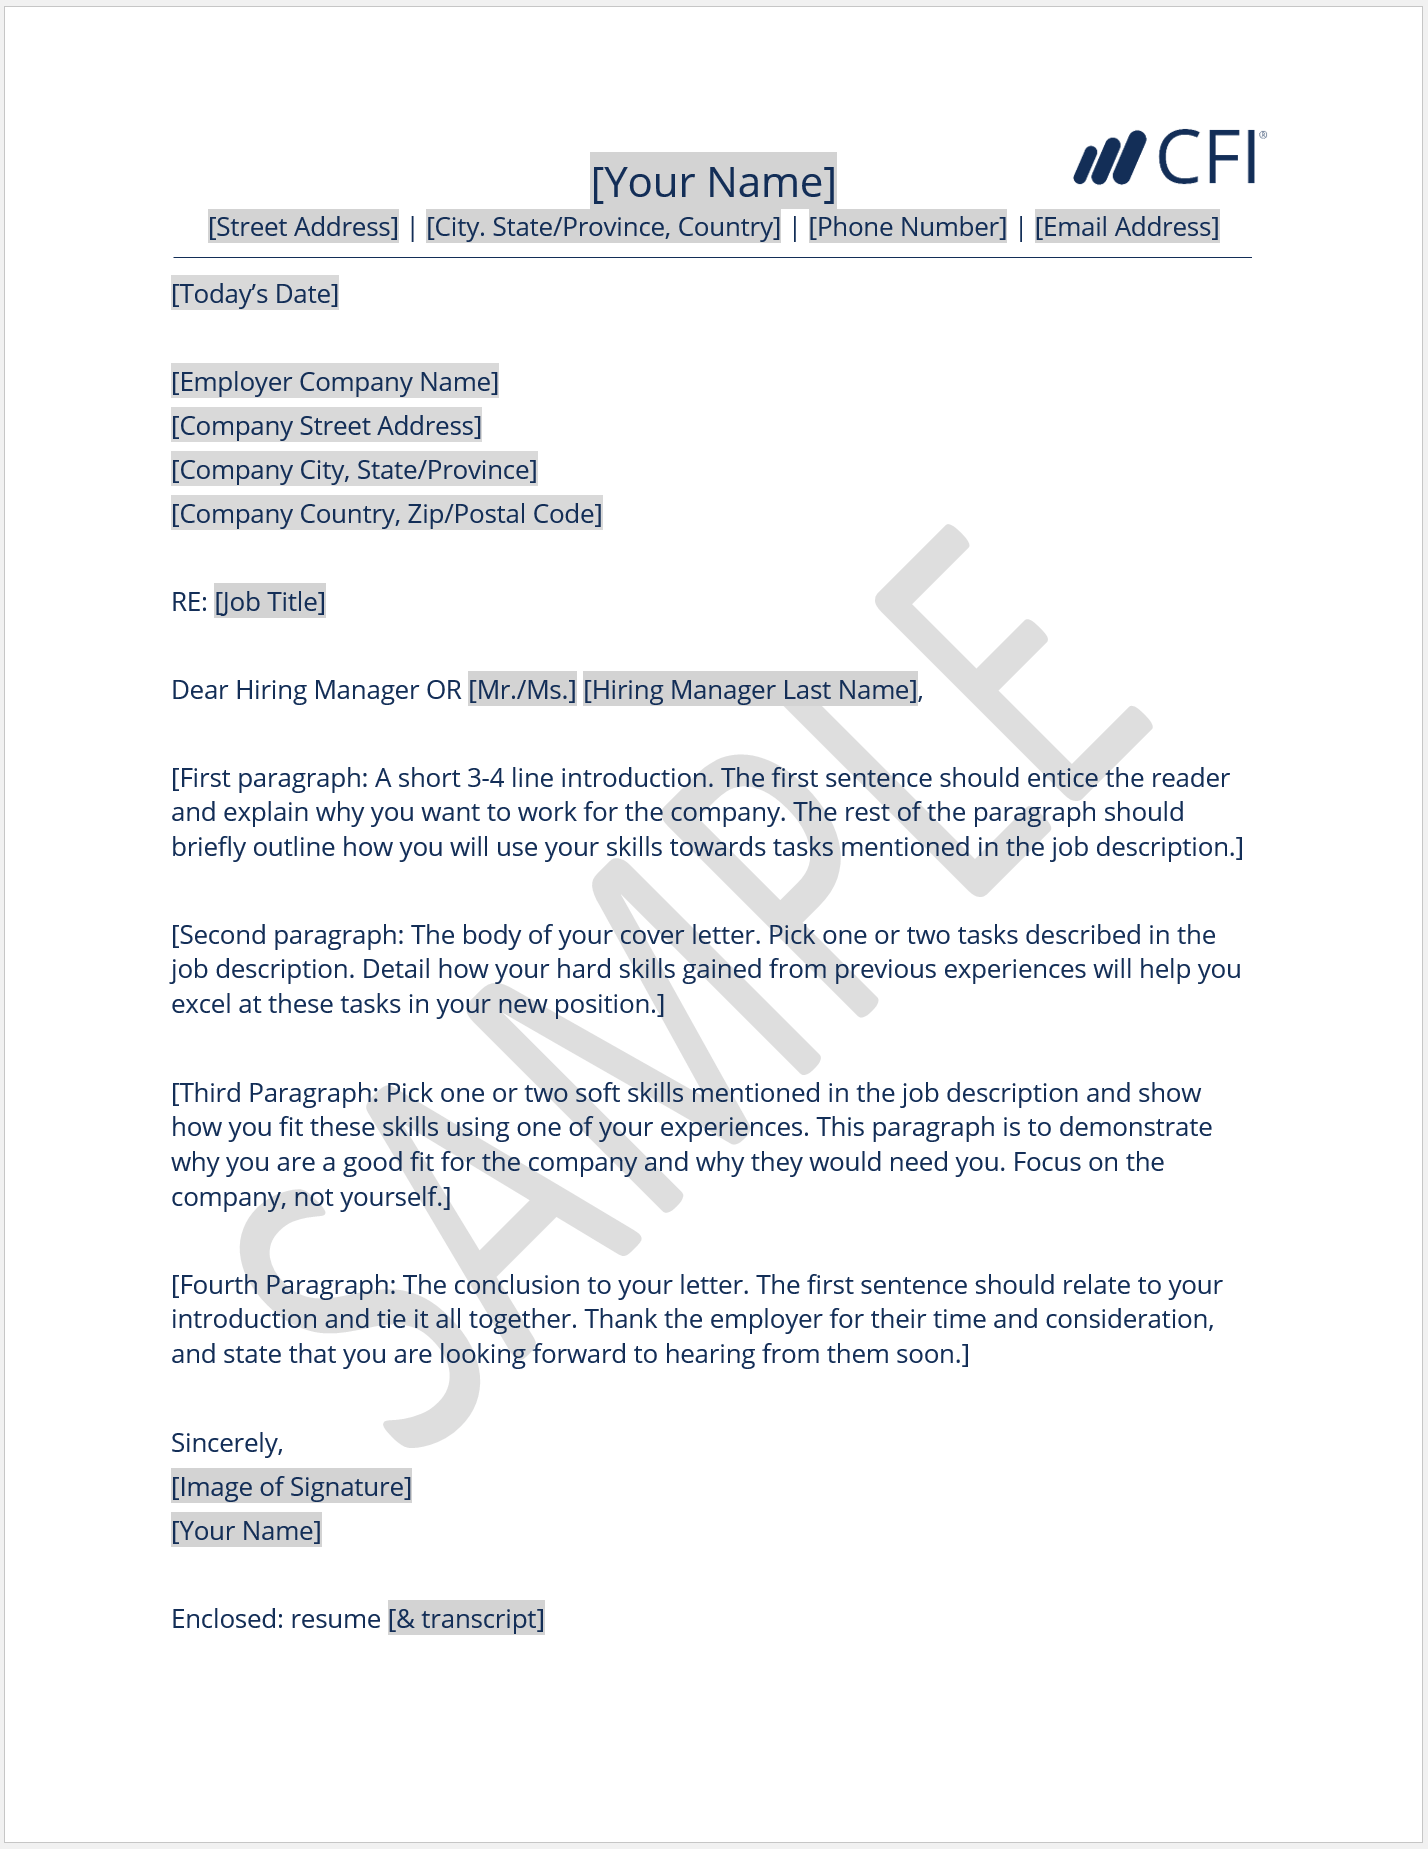 How To Introduce Yourself In Resume How To Write A Cover Letter Overview Steps And Tips